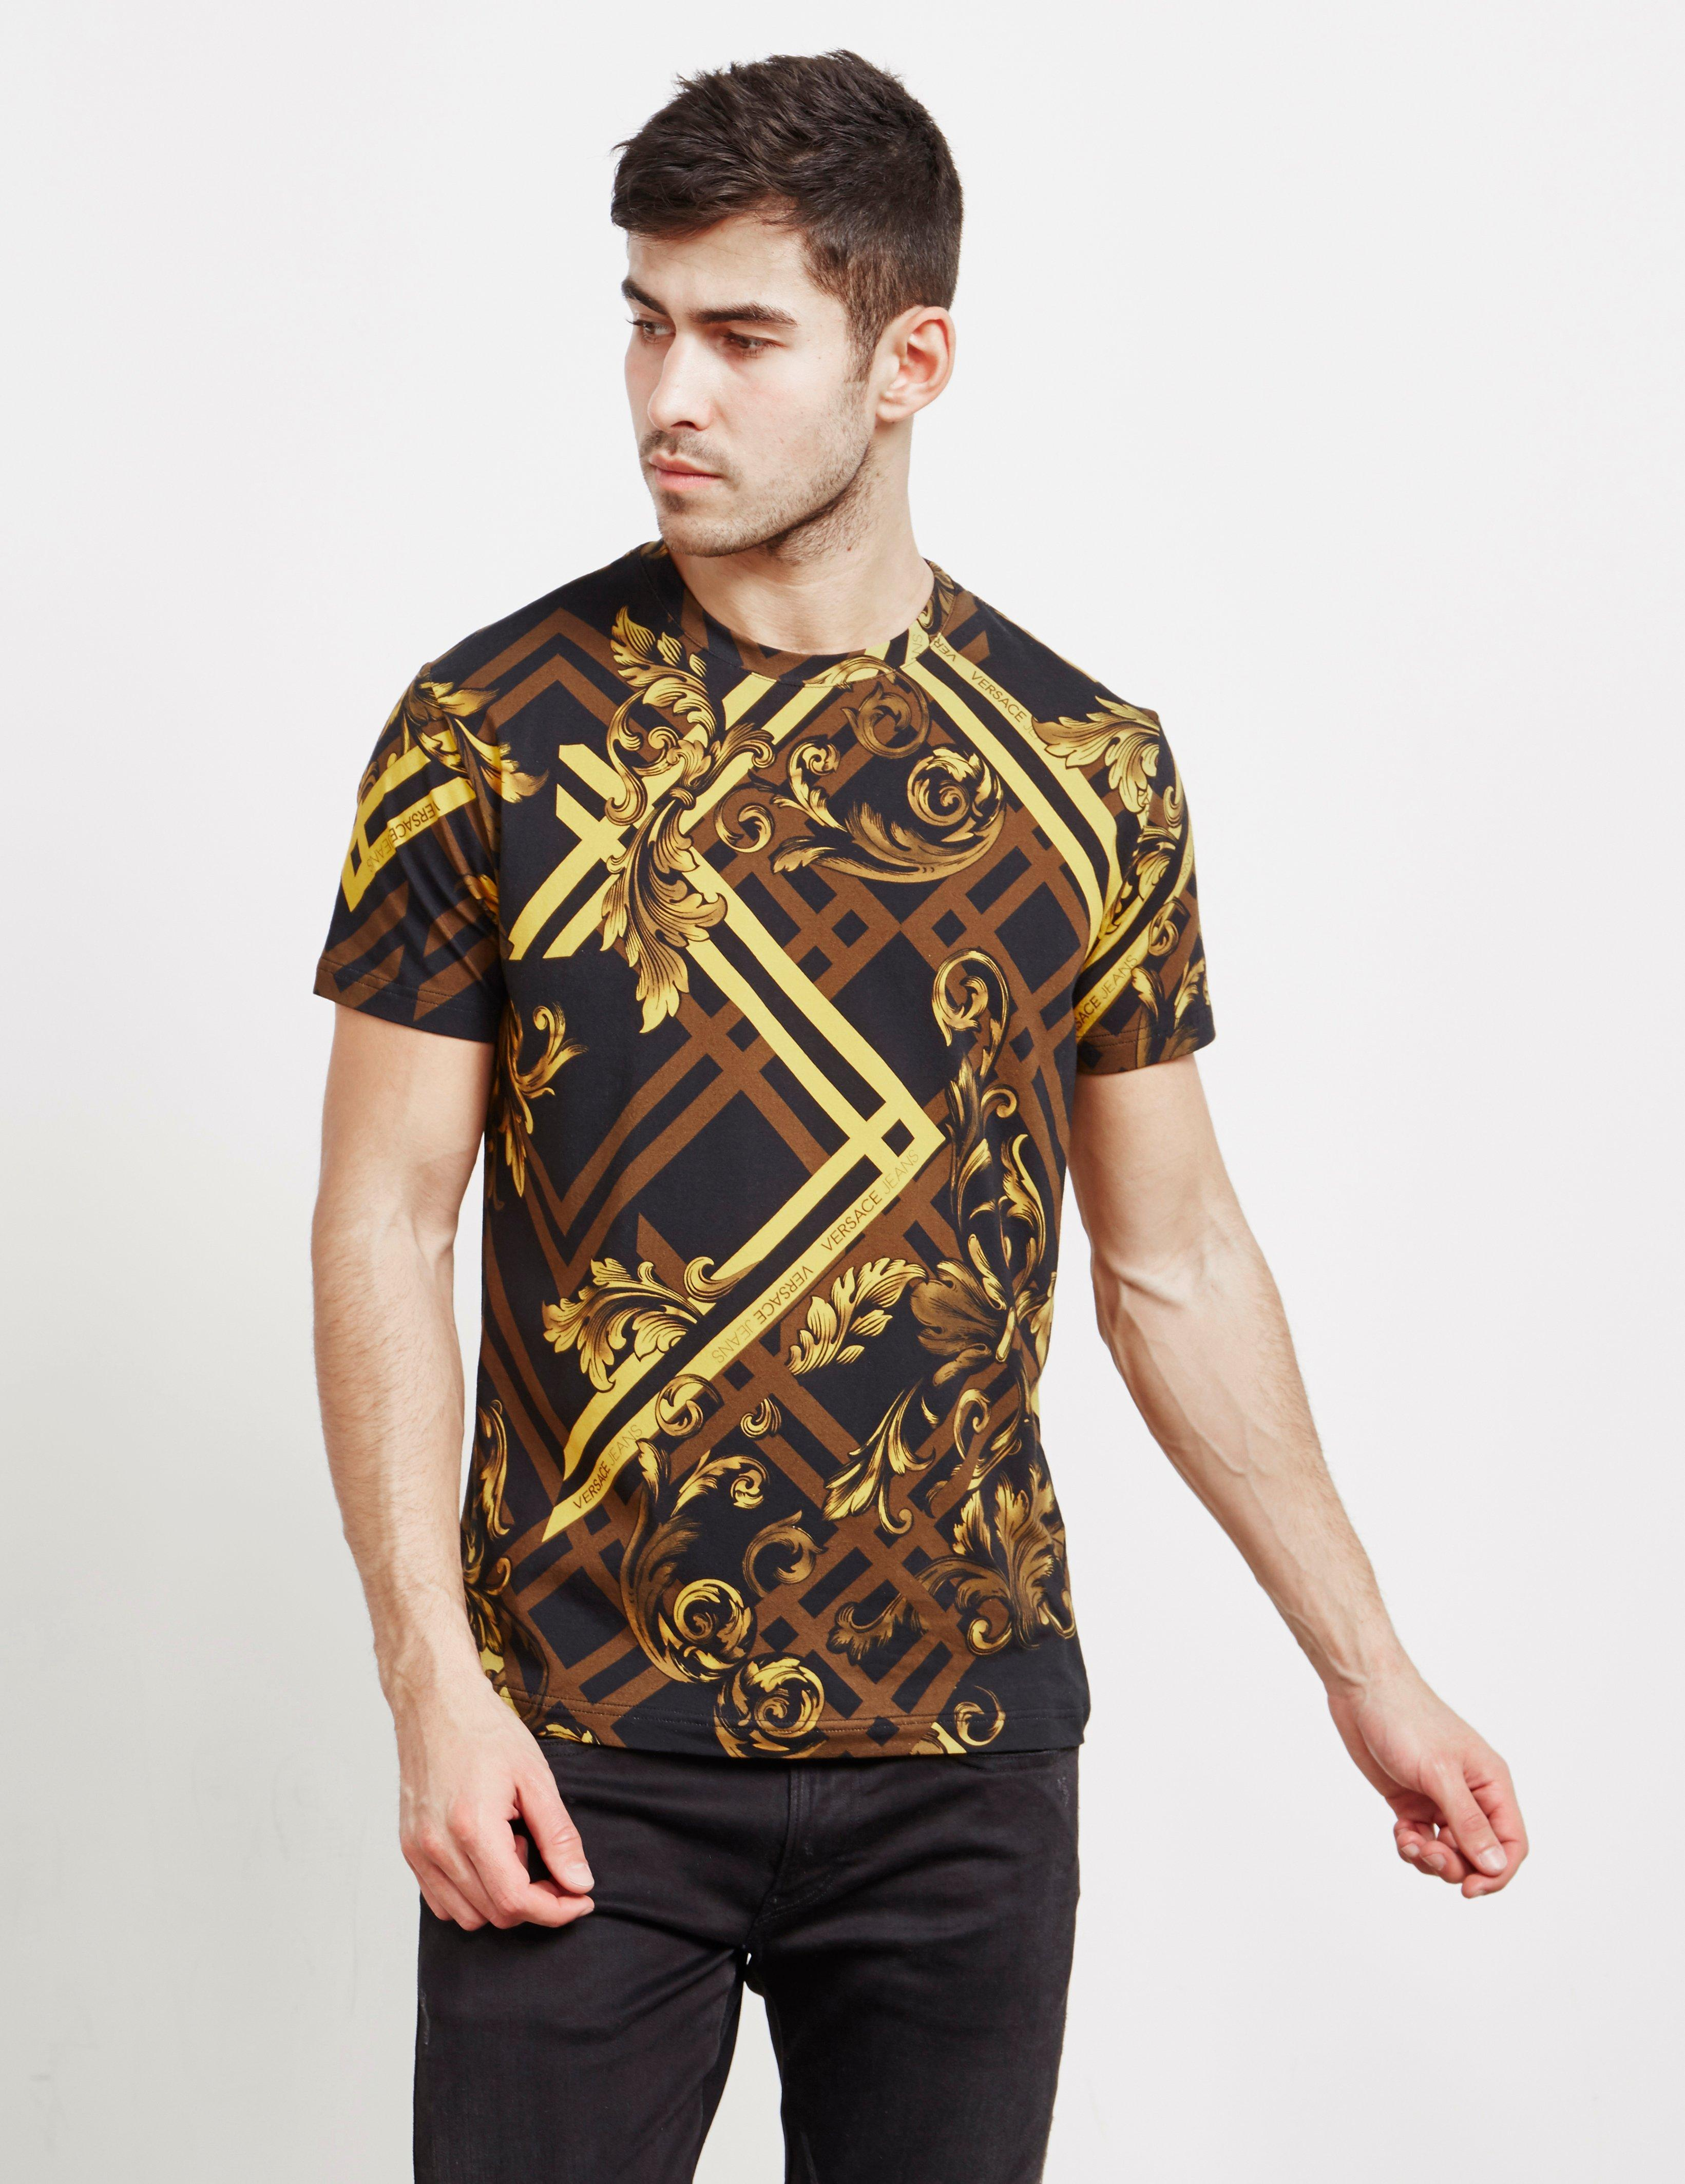 9cde32a2 Versace Jeans - Baroque Print Short Sleeve T-shirt Black for Men - Lyst.  View fullscreen